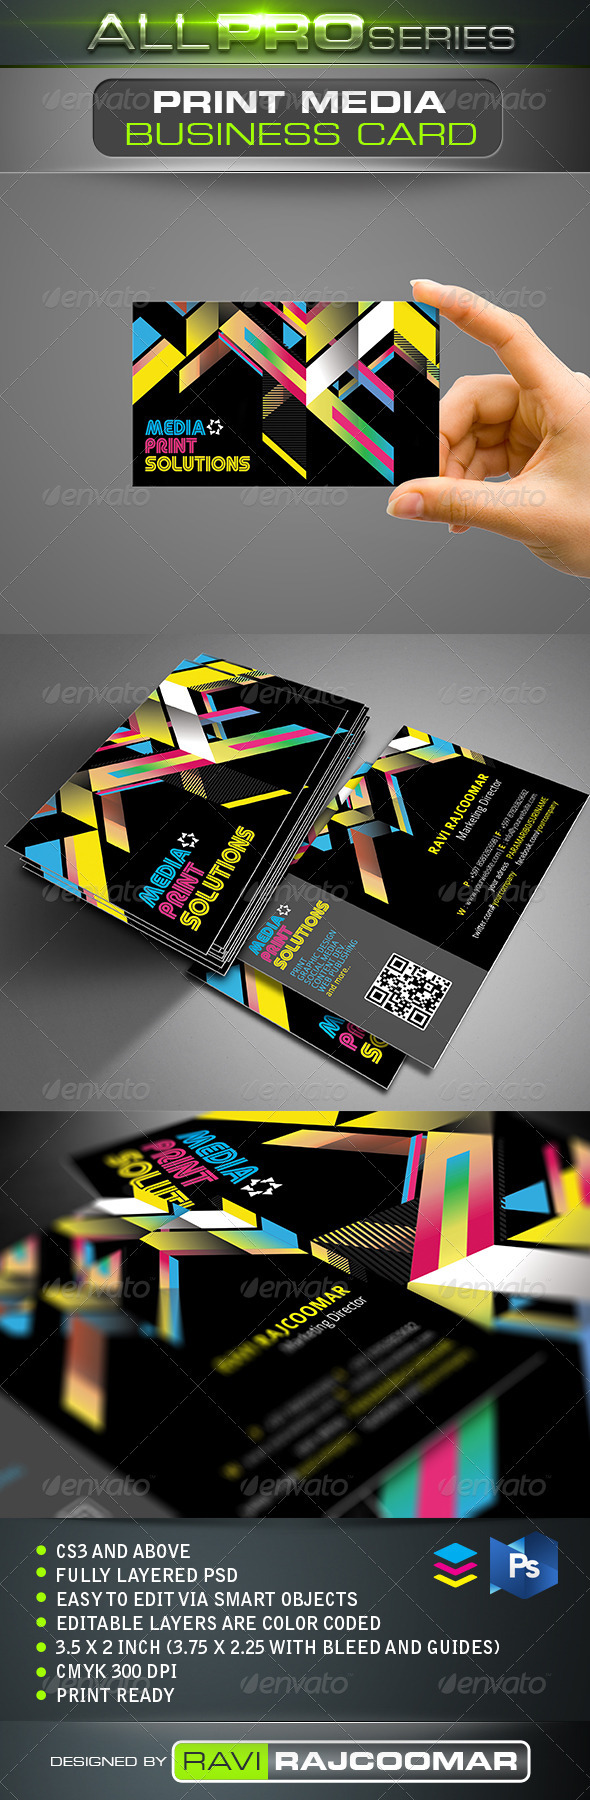 Print Media Business Card - Creative Business Cards